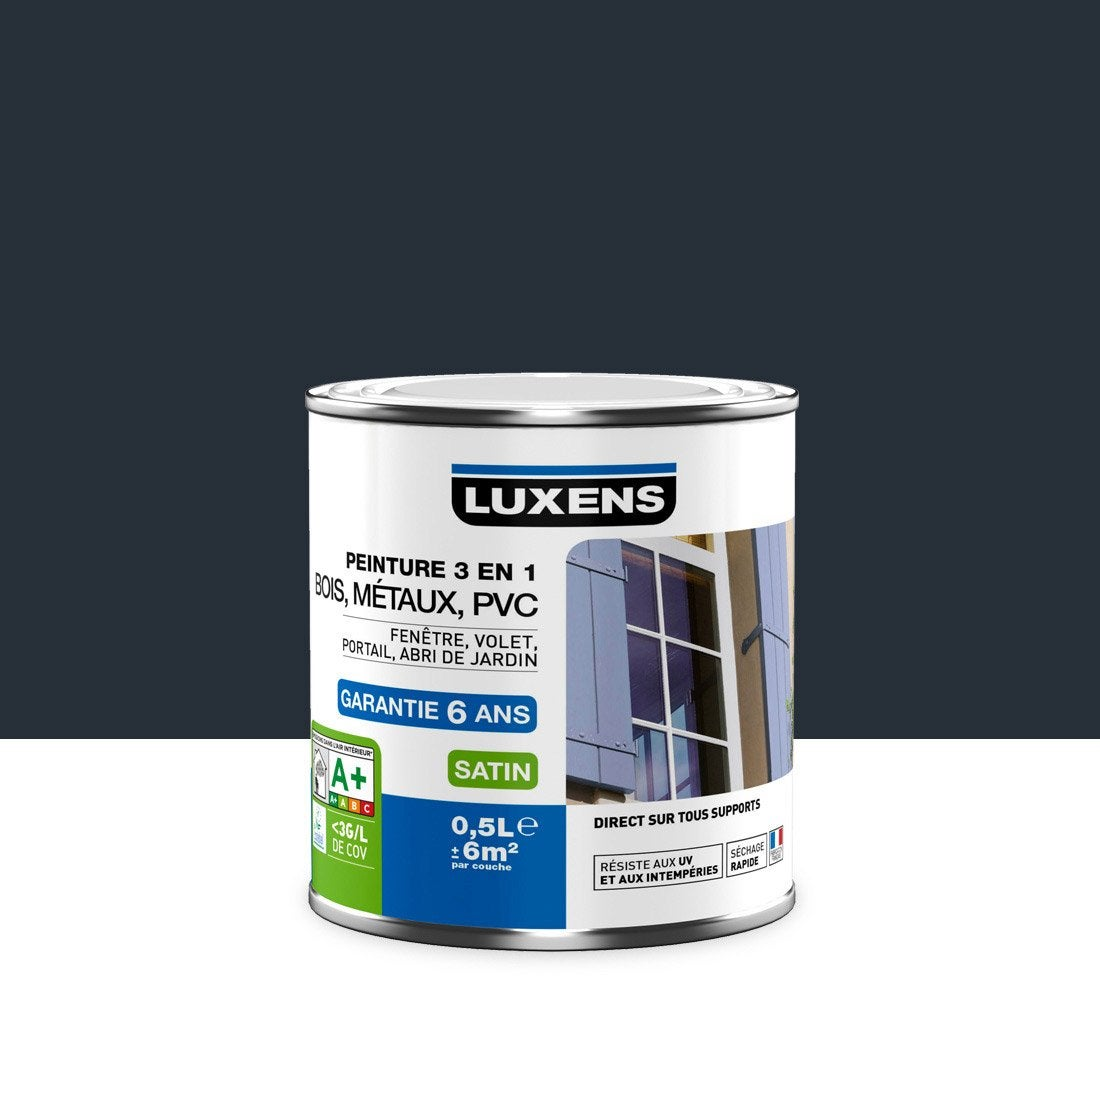 Peinture multimat riau ext rieur 3 en 1 luxens gris for Les differents gris en peinture